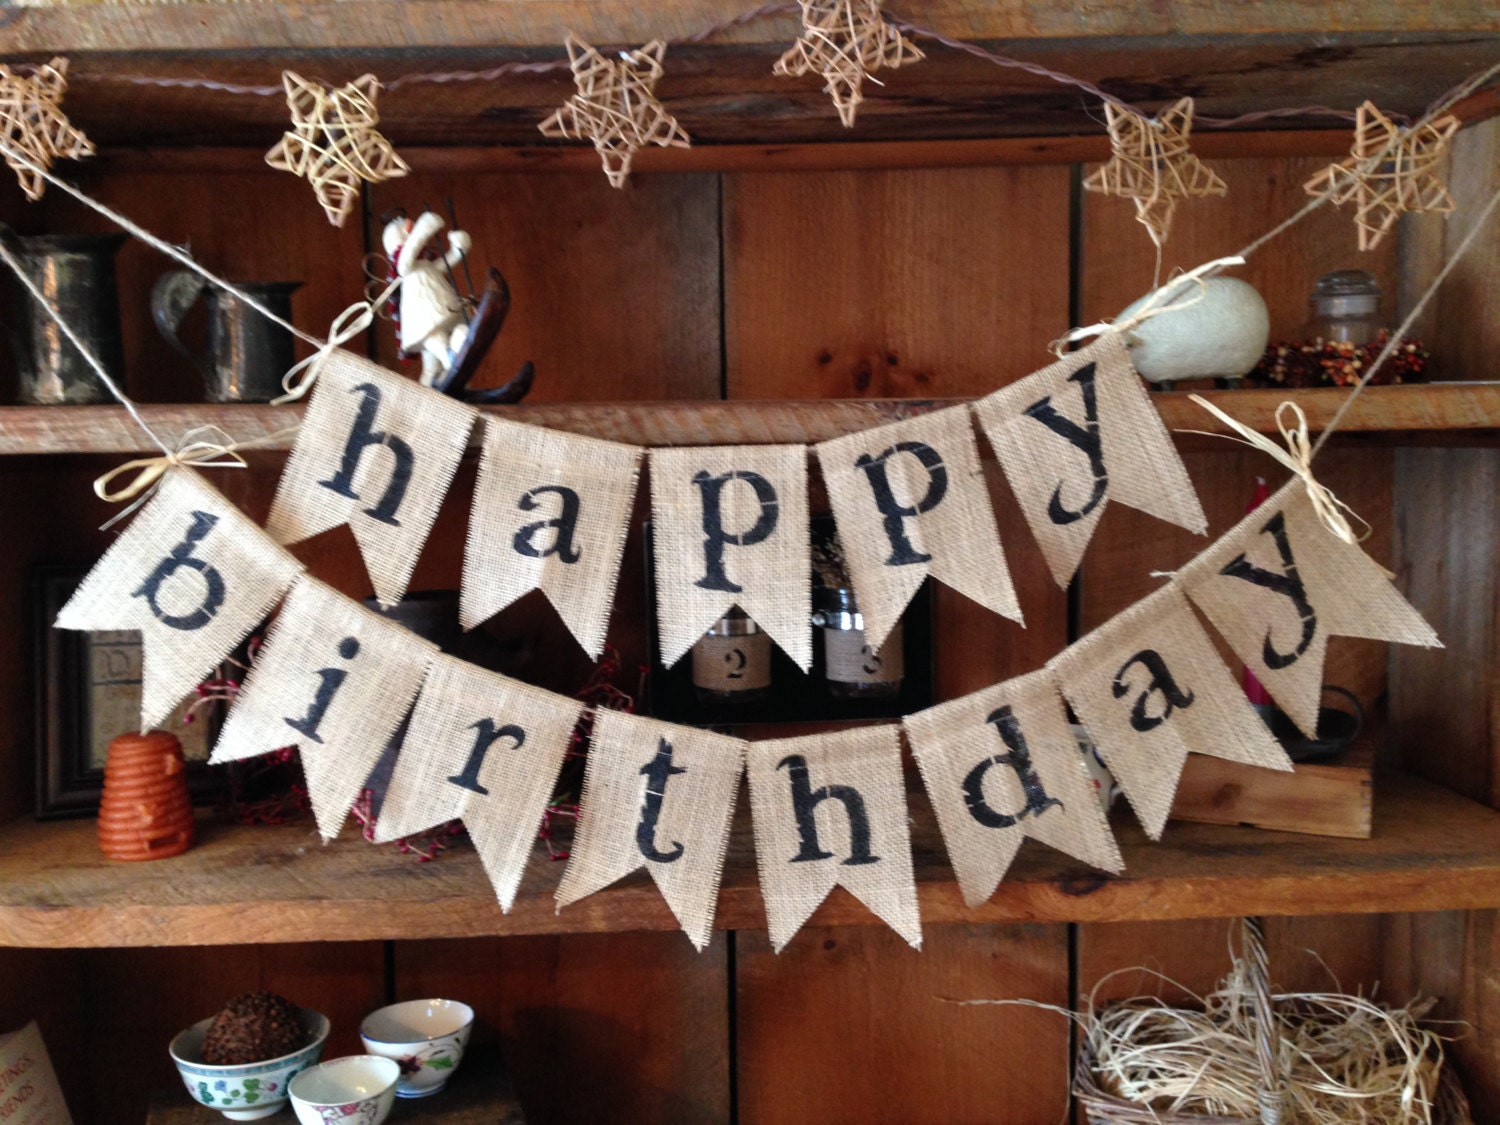 Super Happy Birthday Banner Bunting KD09